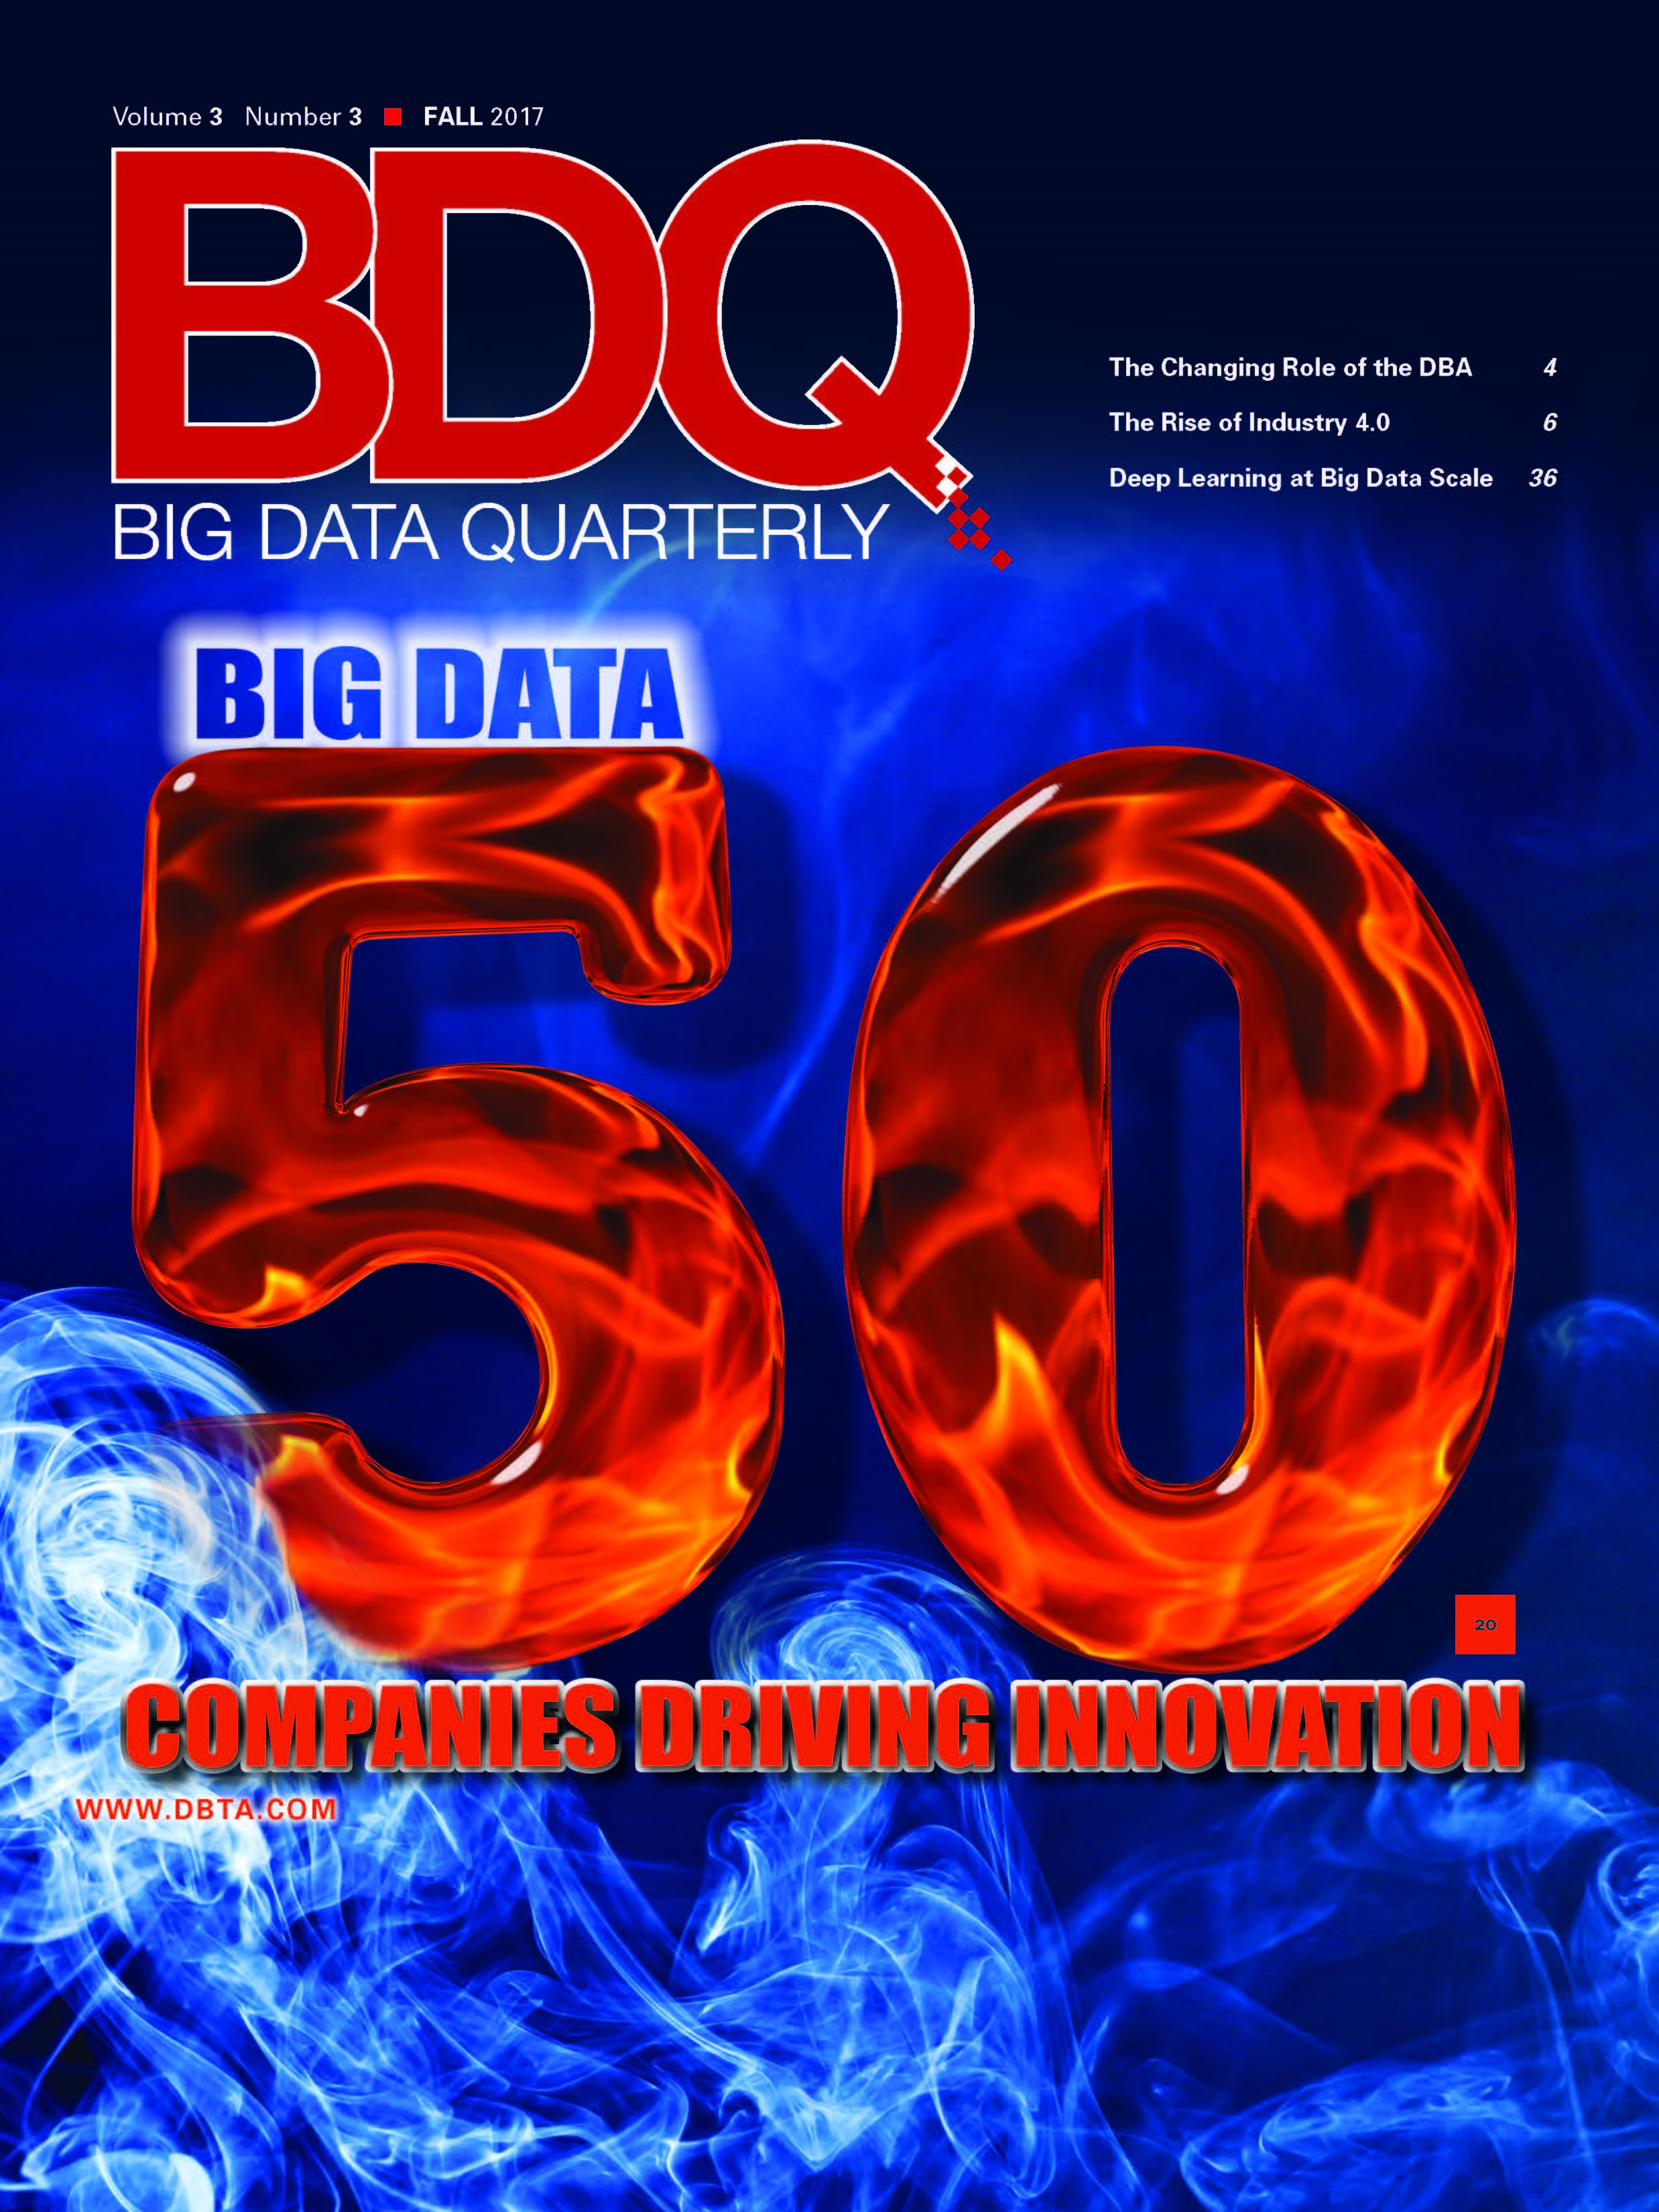 Big Data Quarterly Magazine: Fall 2017 Issue